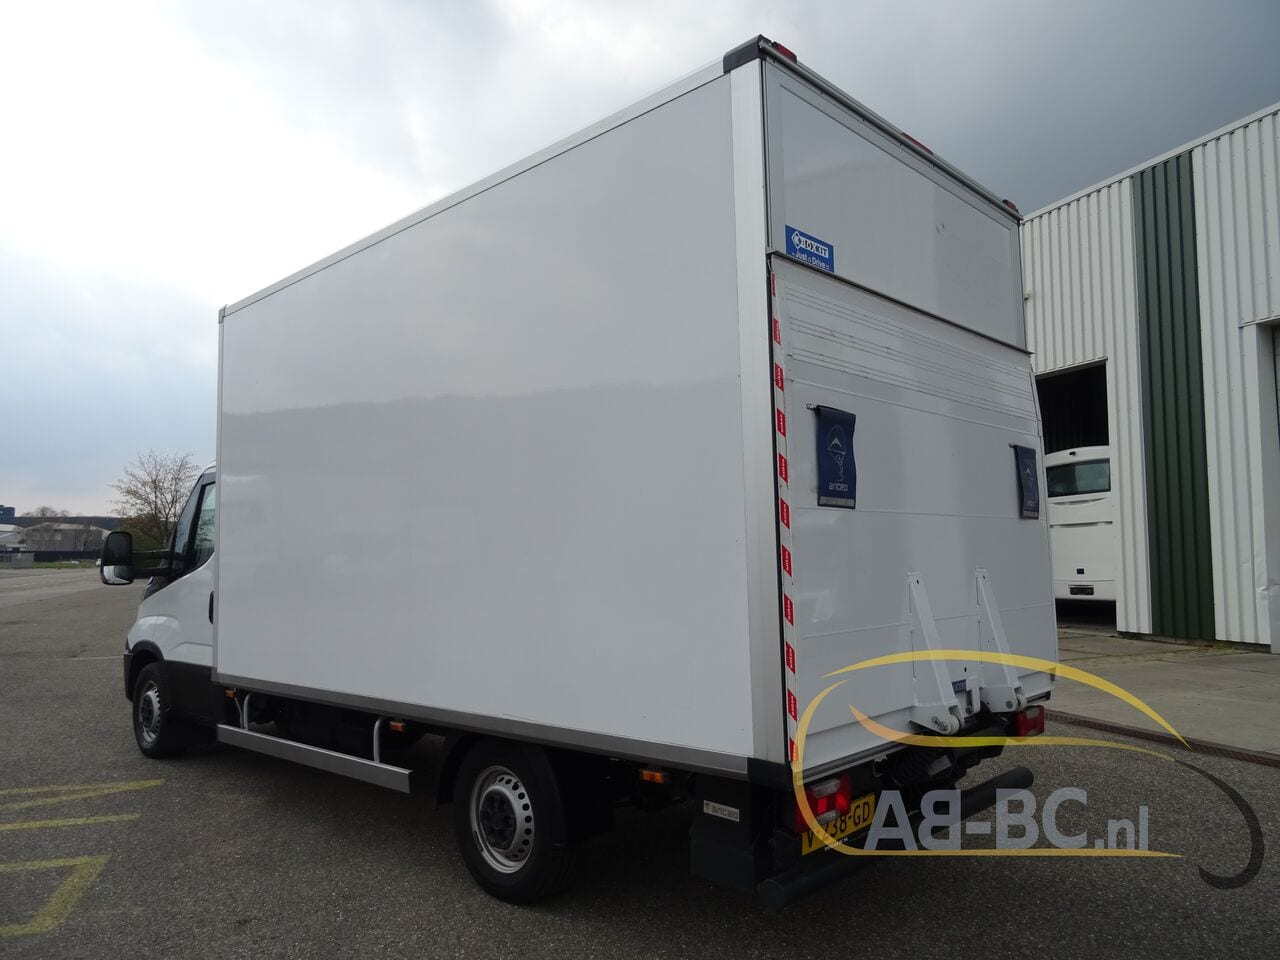 commercial-vehicle-box-truck-3-5tIVECO-Daily-35S14-EURO-6---1618842042241606169_big_165196a9cabc4eaf3eeac9e07614c66c--20081111411660340700